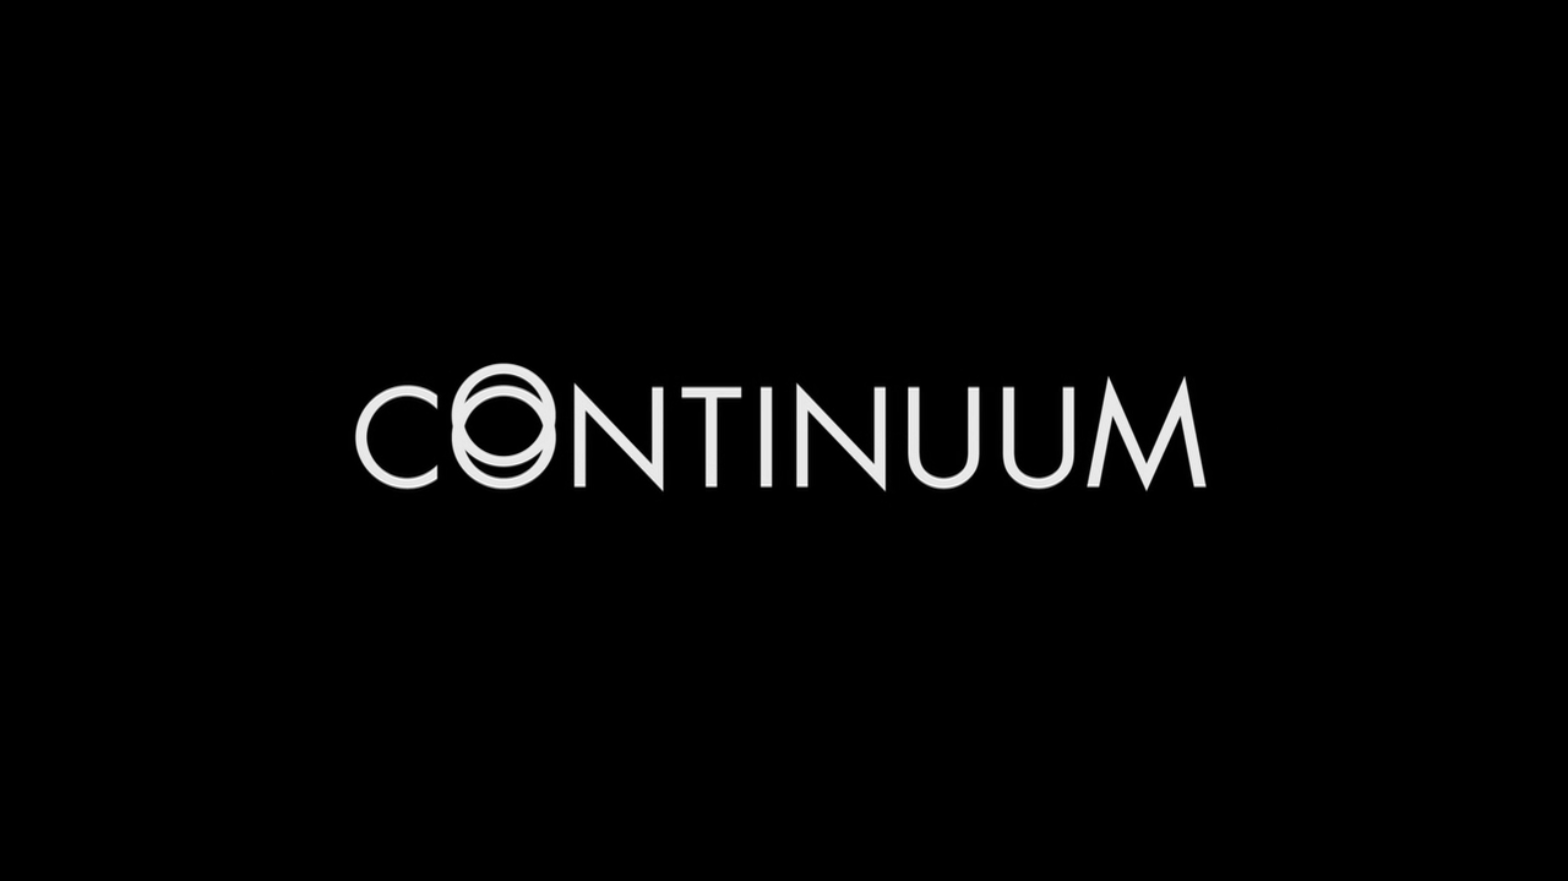 Continuum - Logo